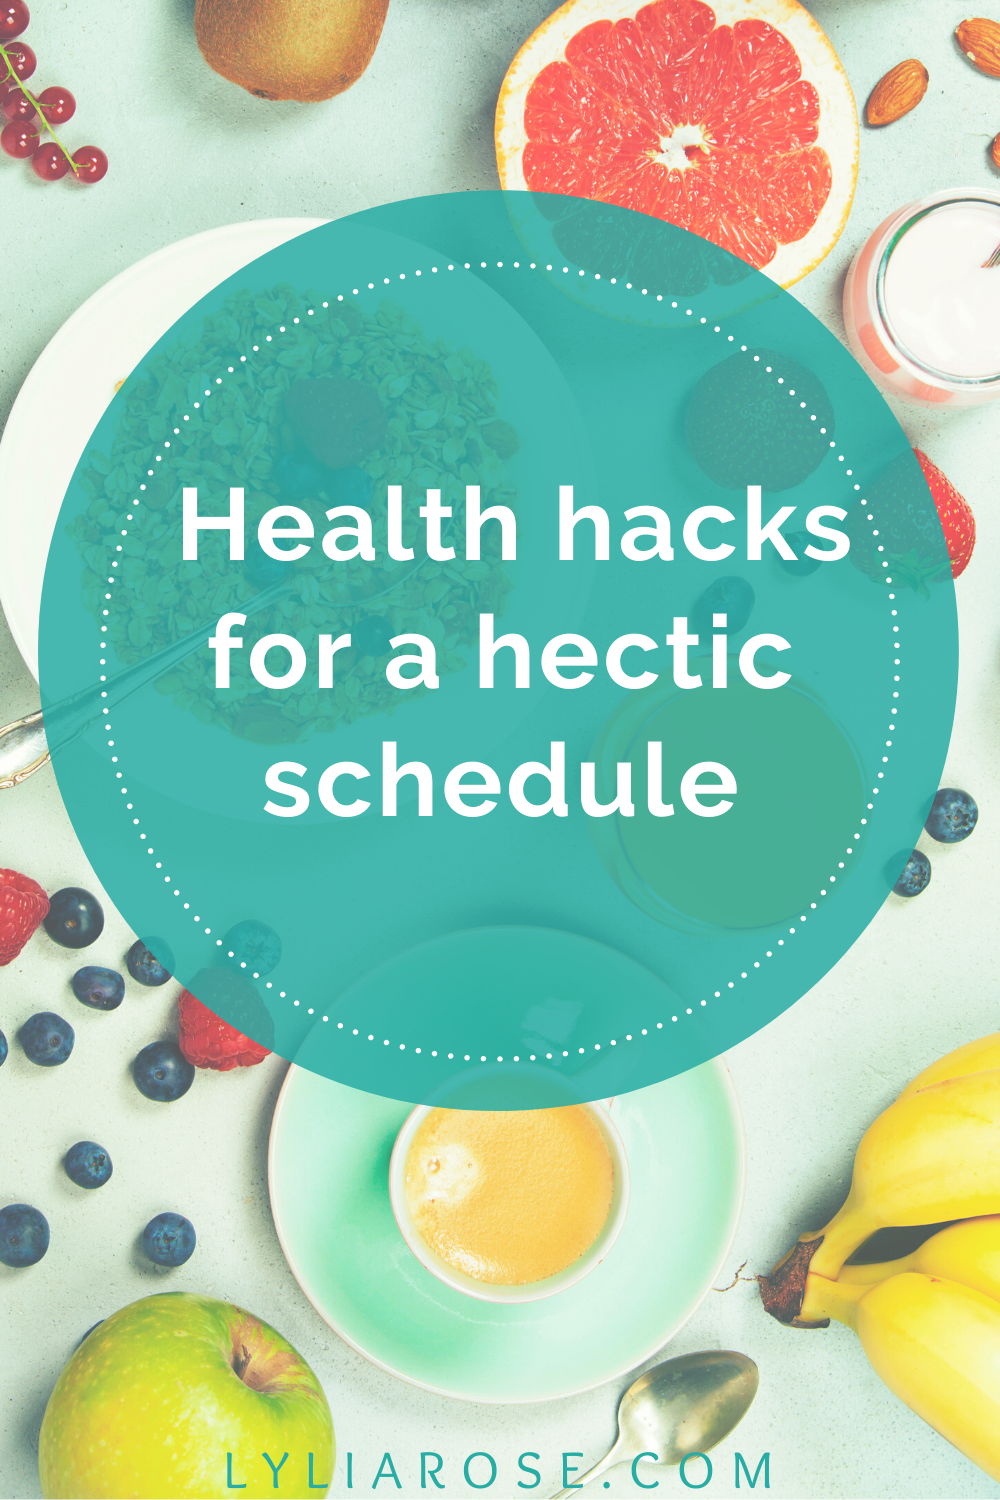 _Health hacks for a hectic schedule